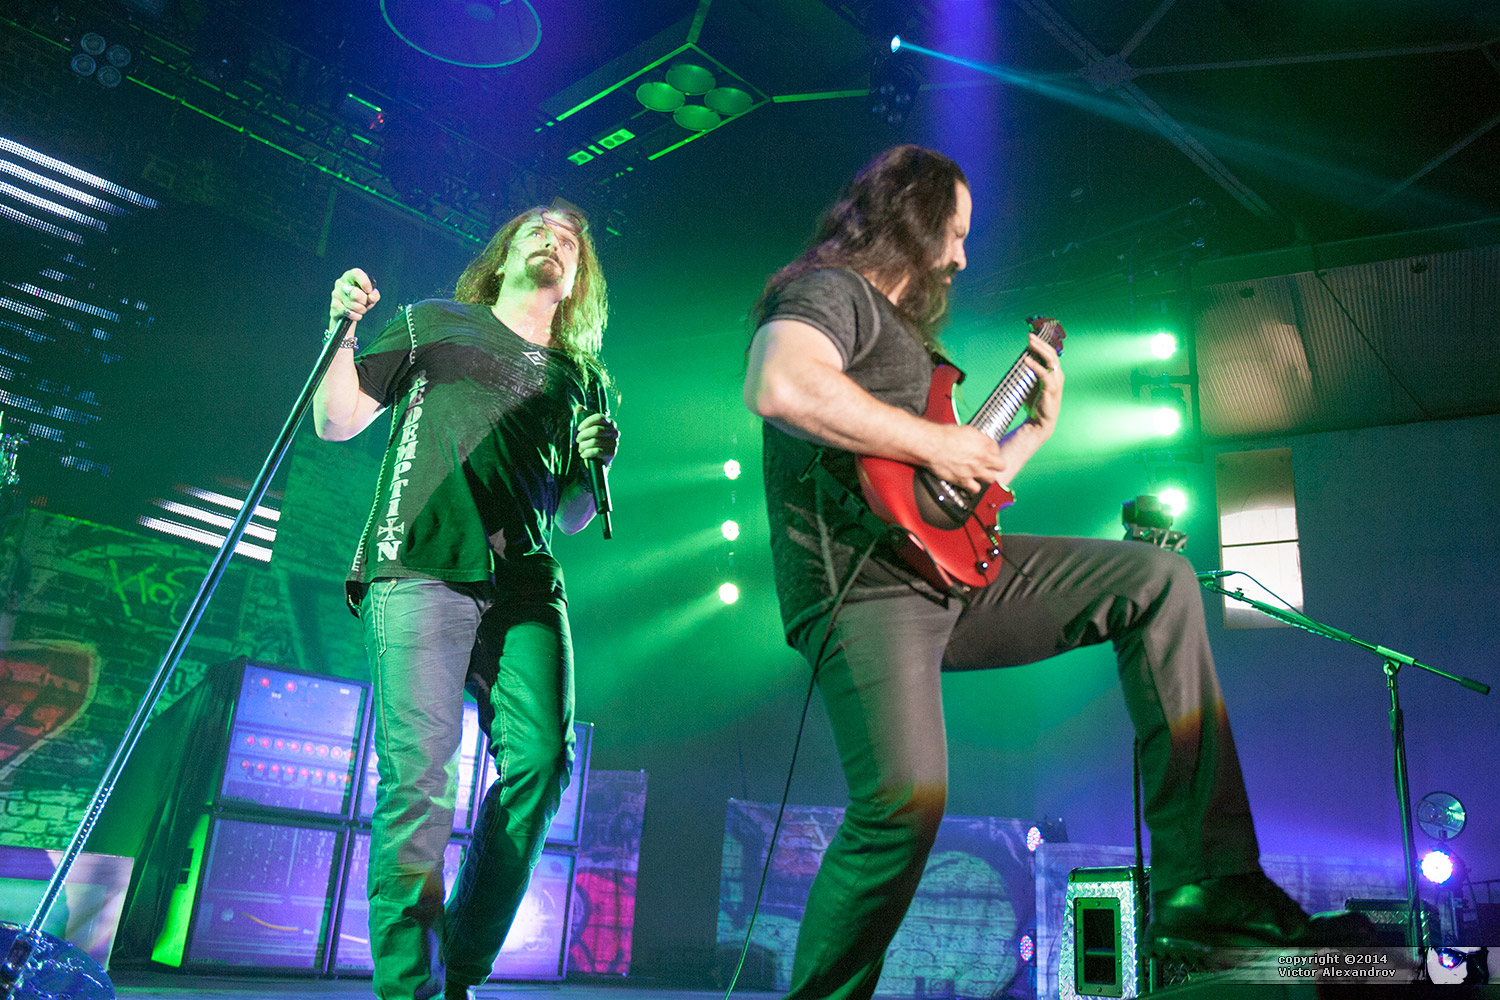 James LaBrie & John Petrucci